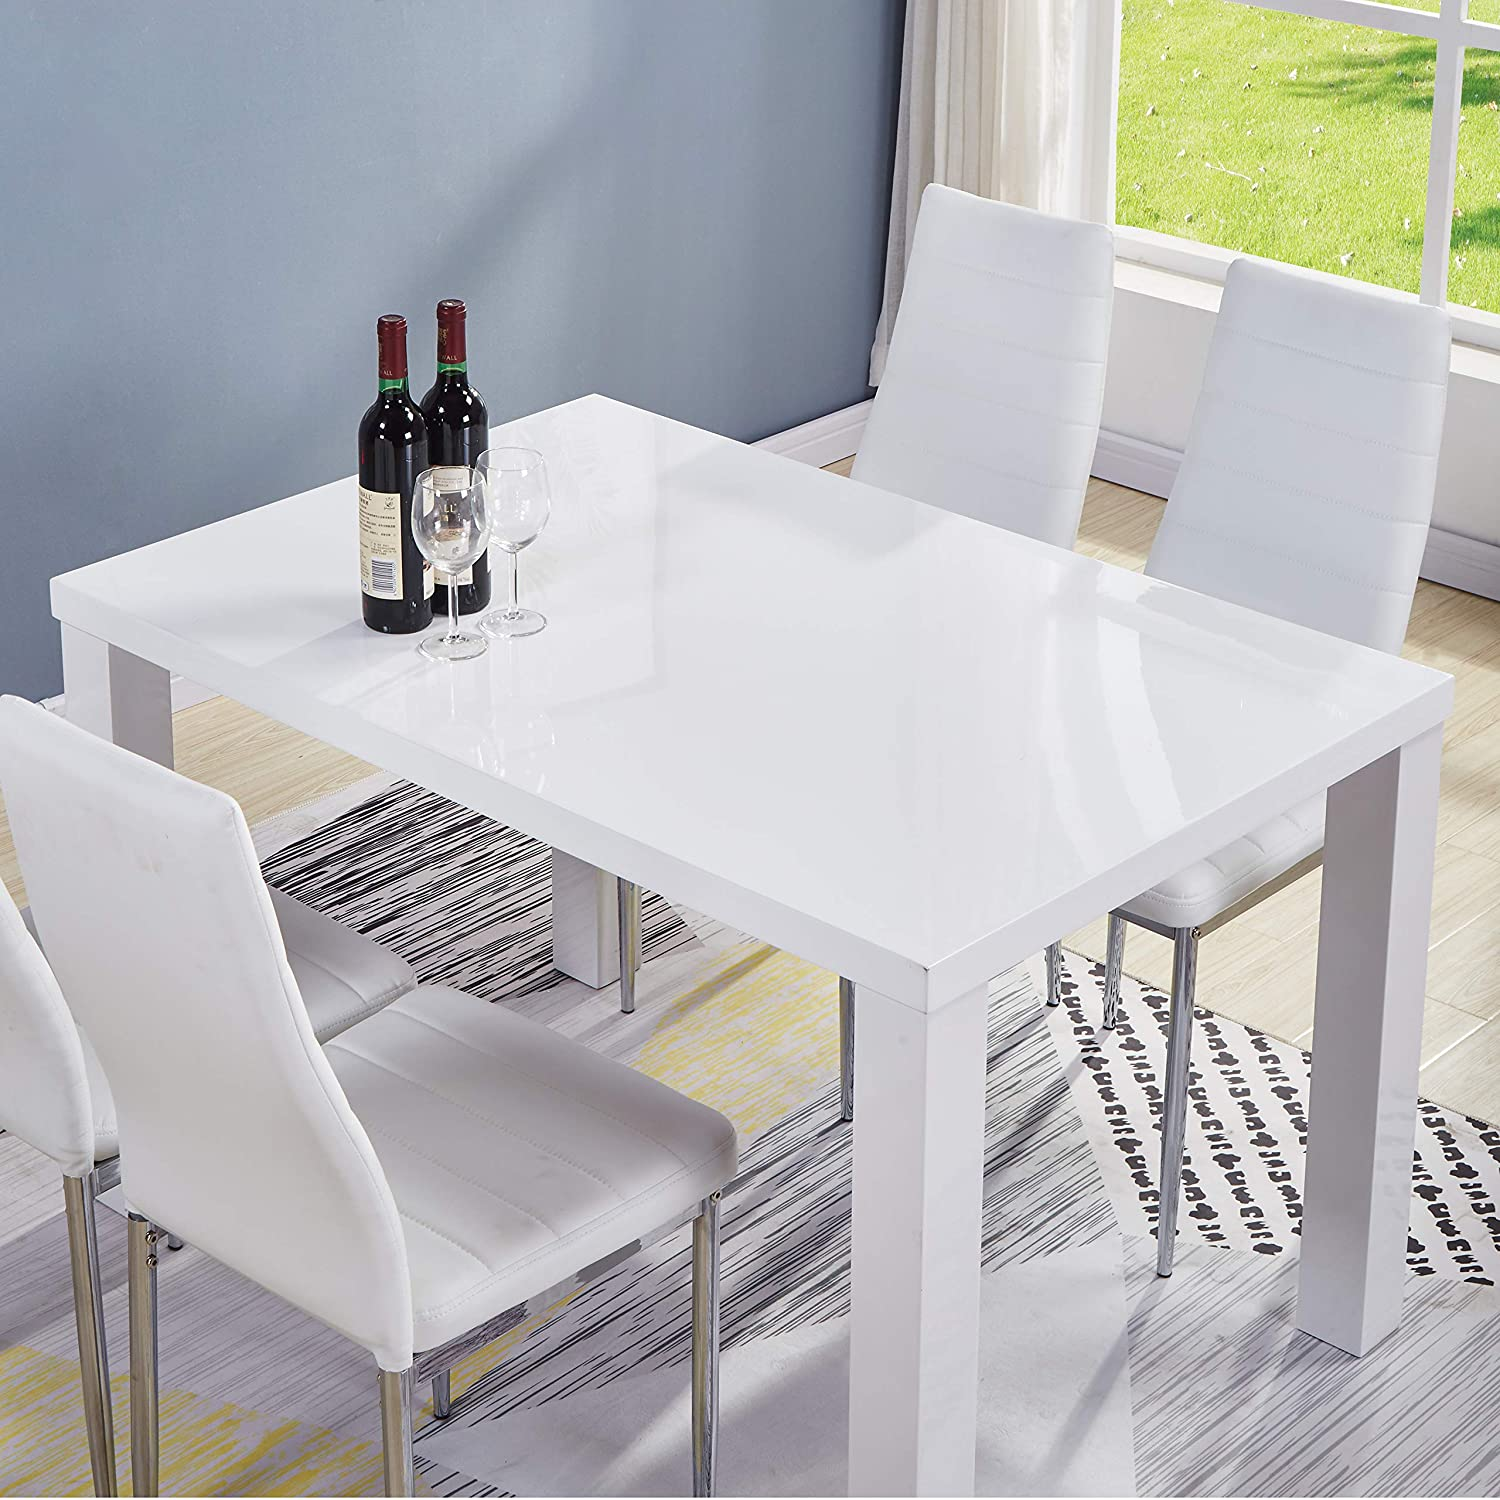 Surprising Goldfan Morden High Gloss Dining Tables Taku Rectangle Kitchen Tables 4 6 Seater Dining Table Wood White Only Table Inzonedesignstudio Interior Chair Design Inzonedesignstudiocom